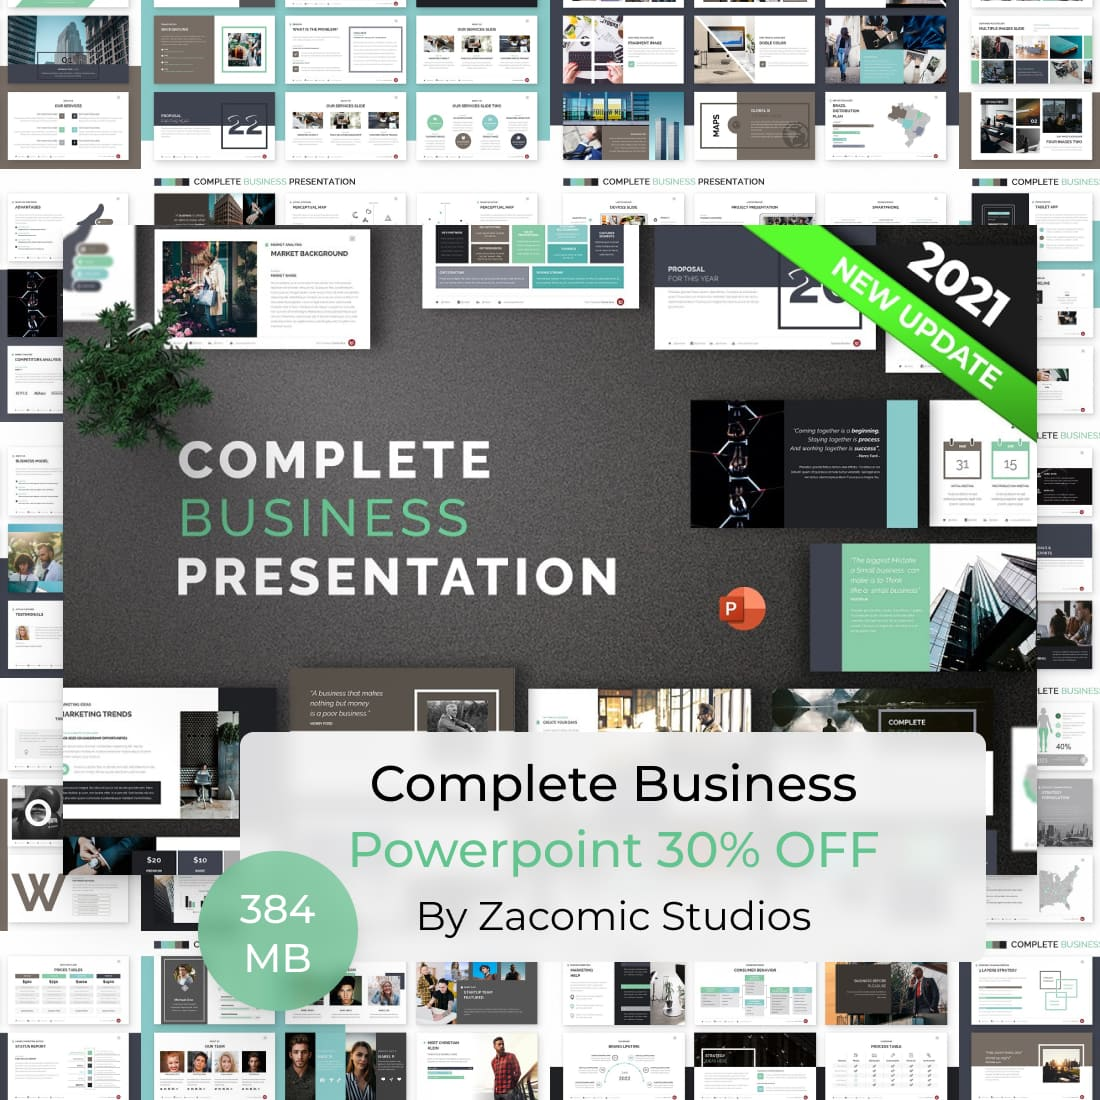 01 Complete Business Powerpoint 30 OFF 1100x1100 1